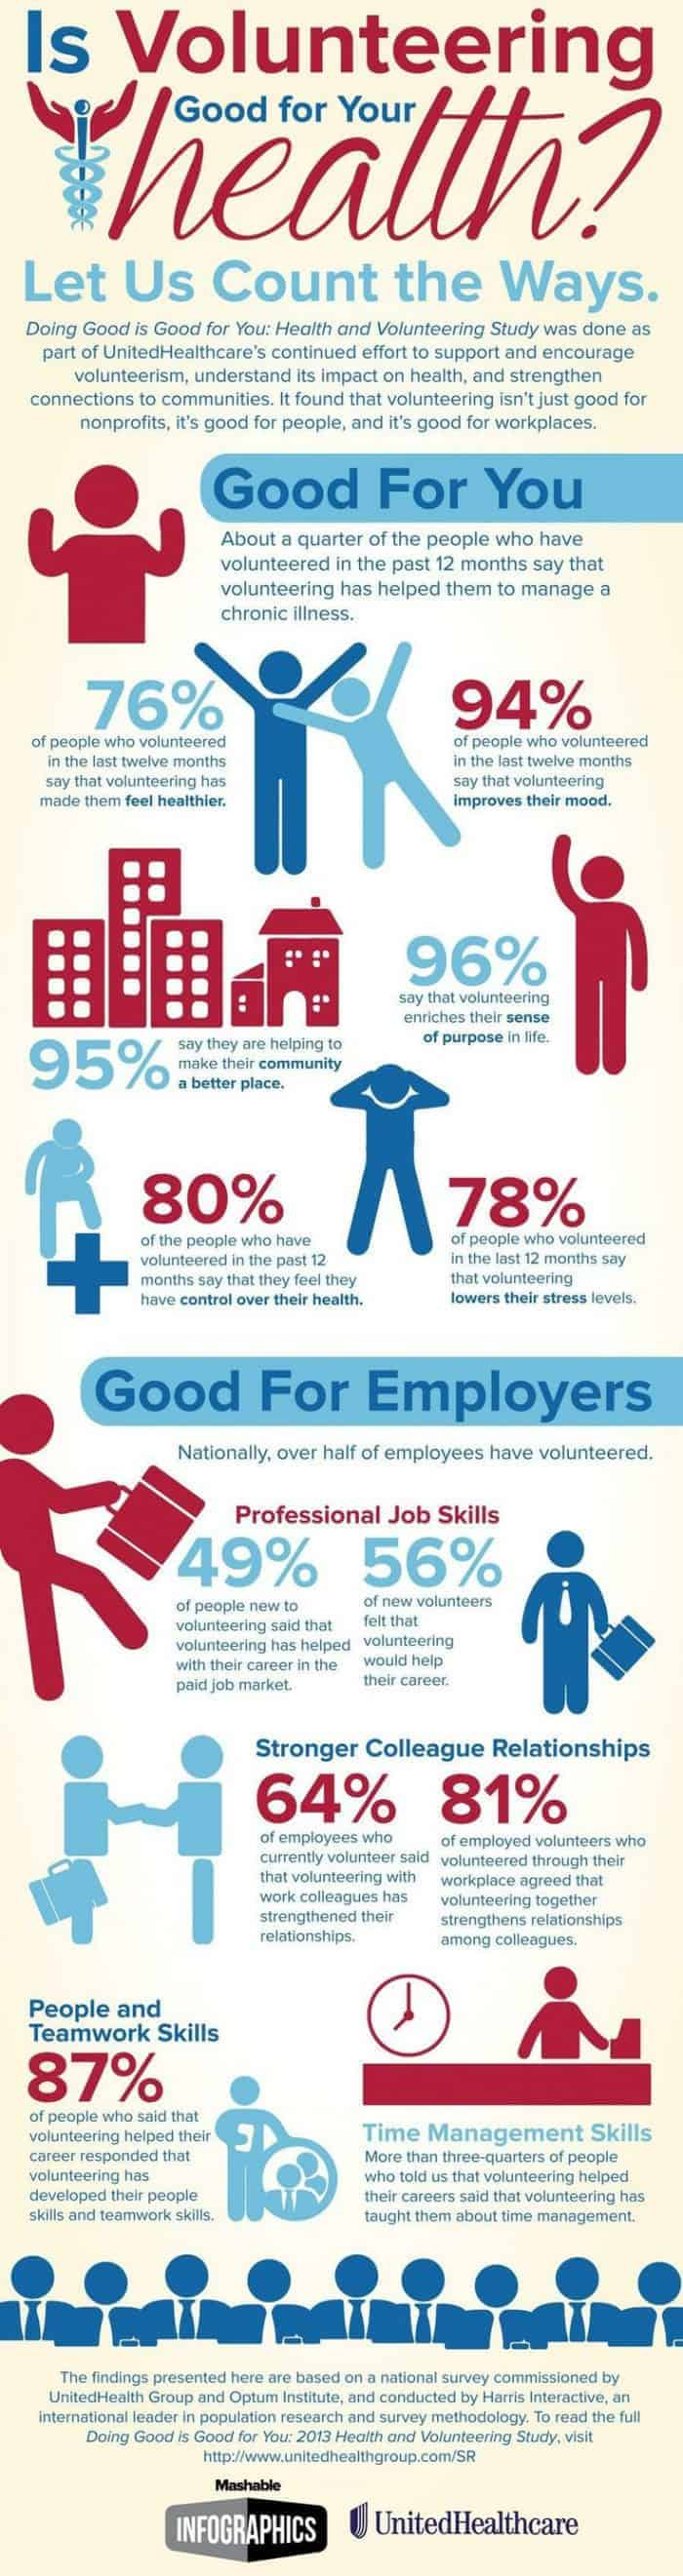 Is Volunteering Good For Your Health Infographic